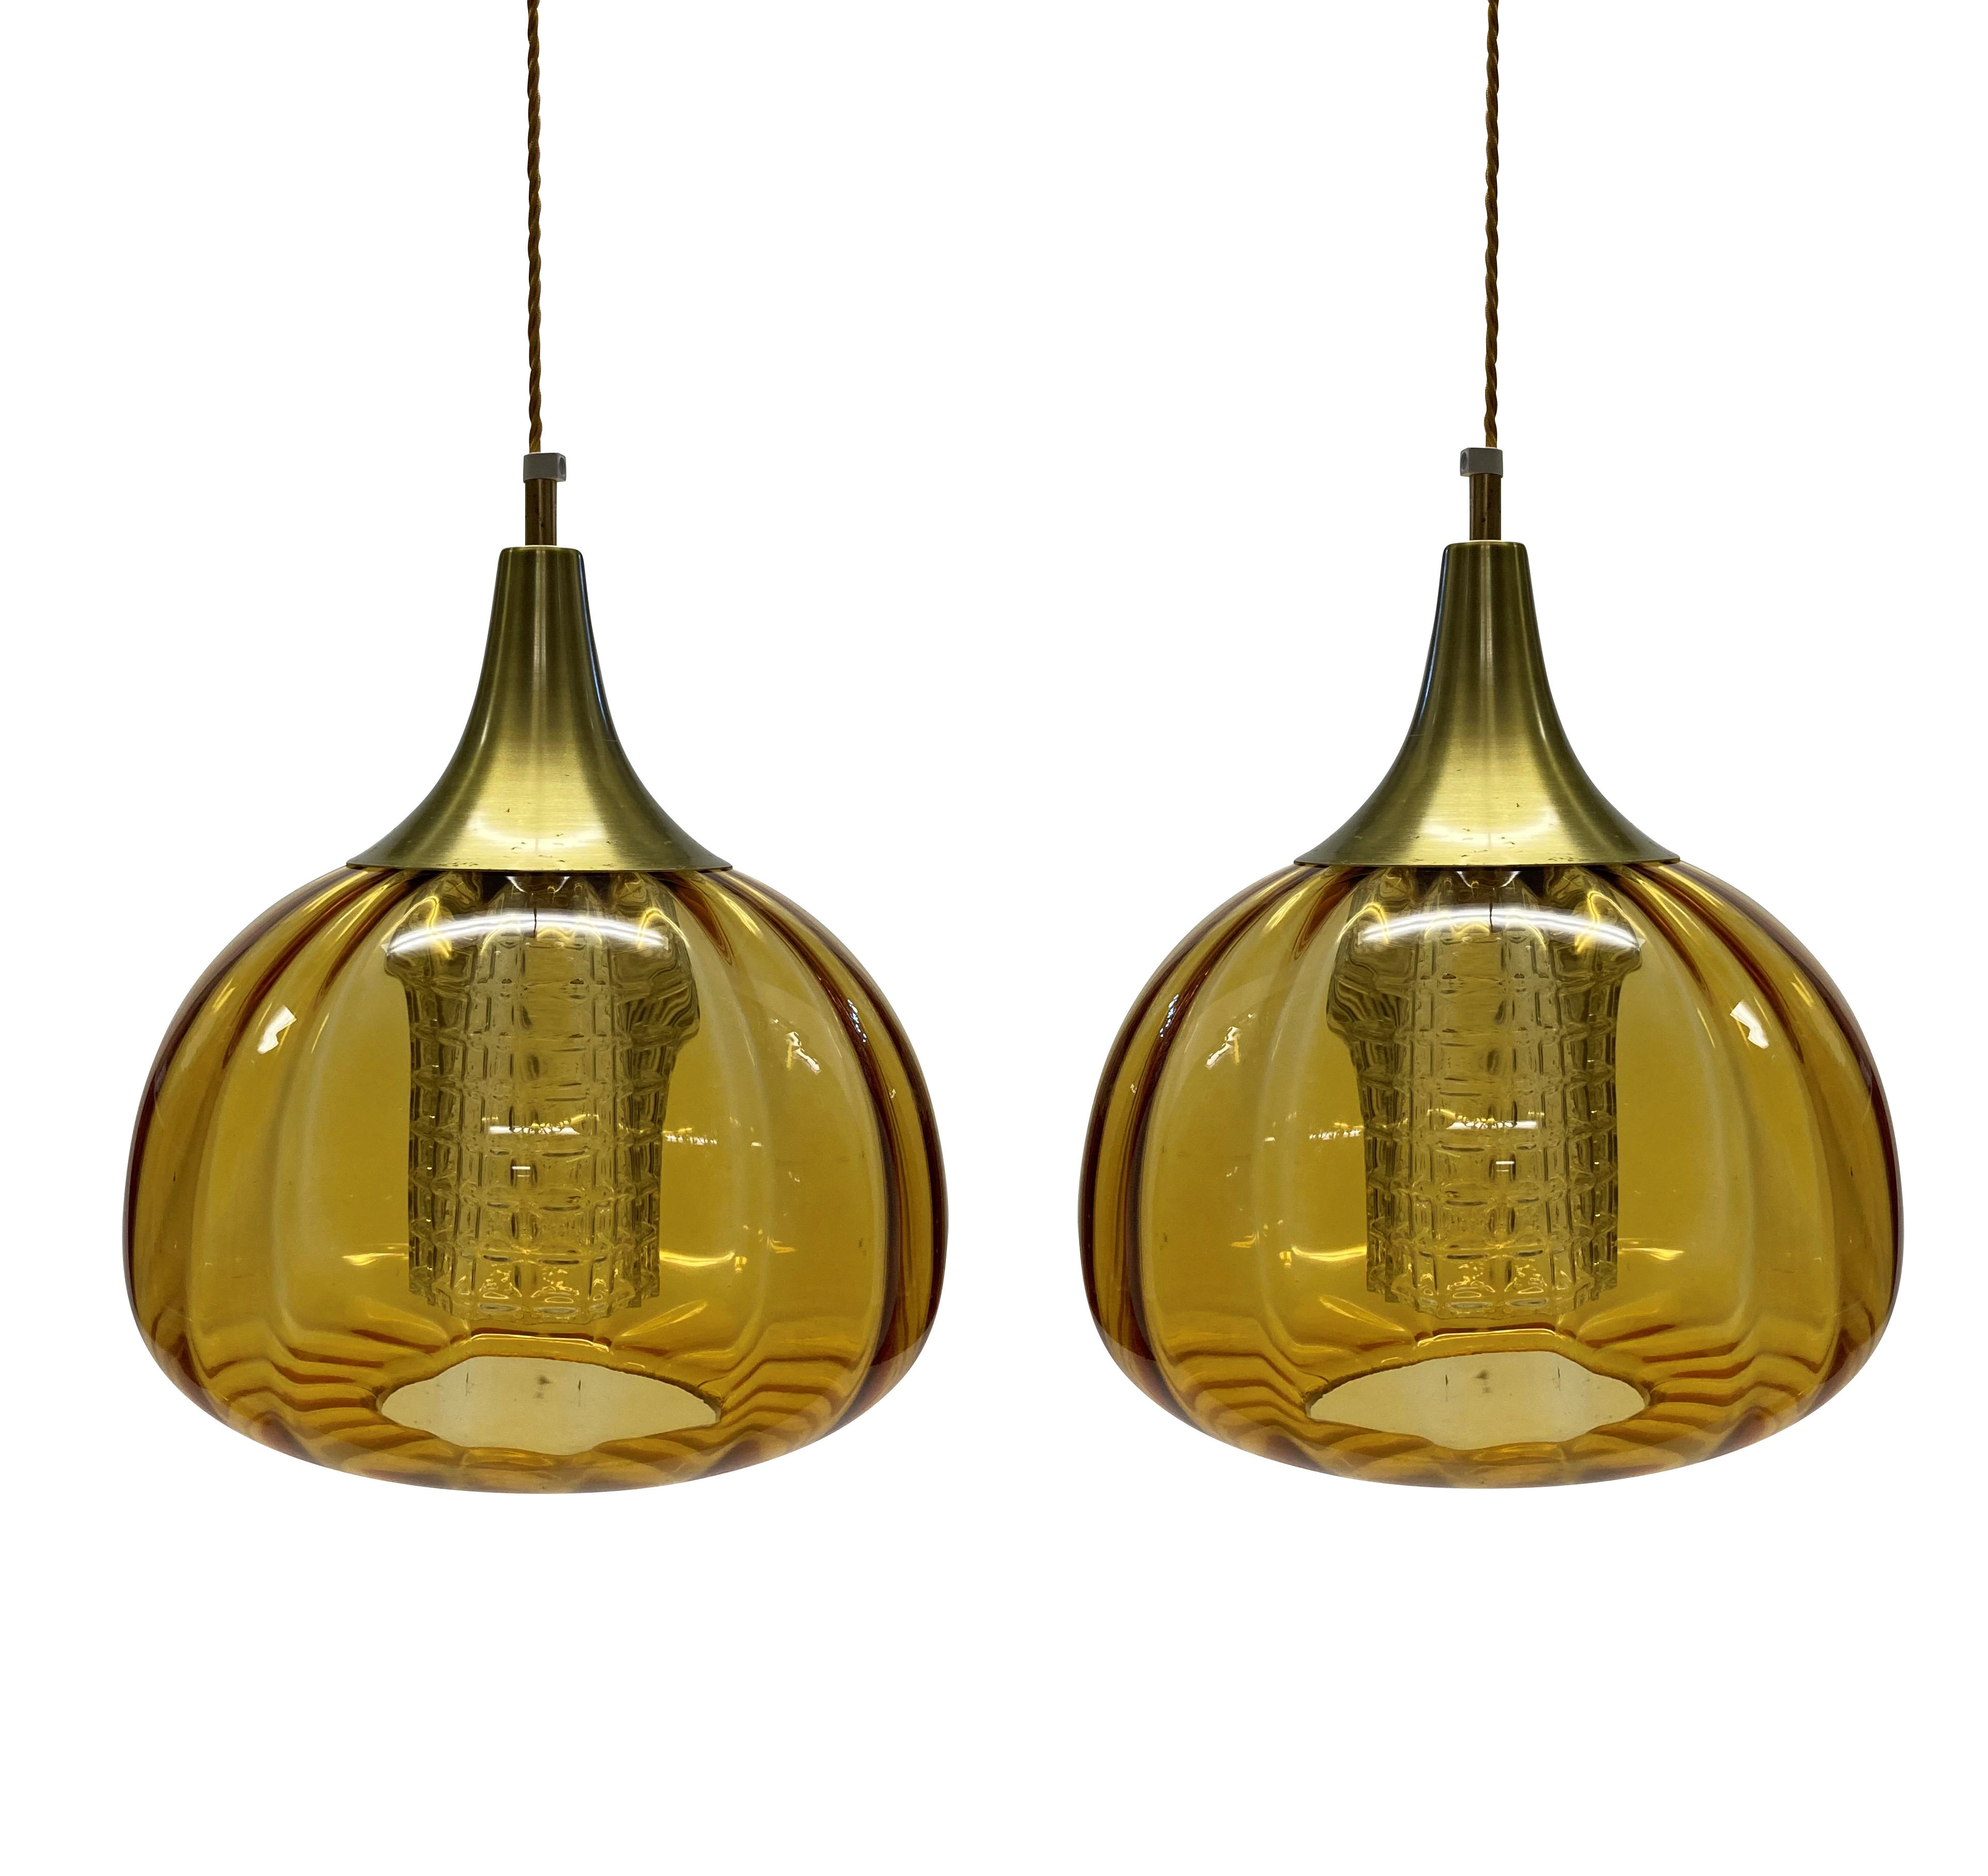 A PAIR OF ORREFORS PENDANT LIGHTS